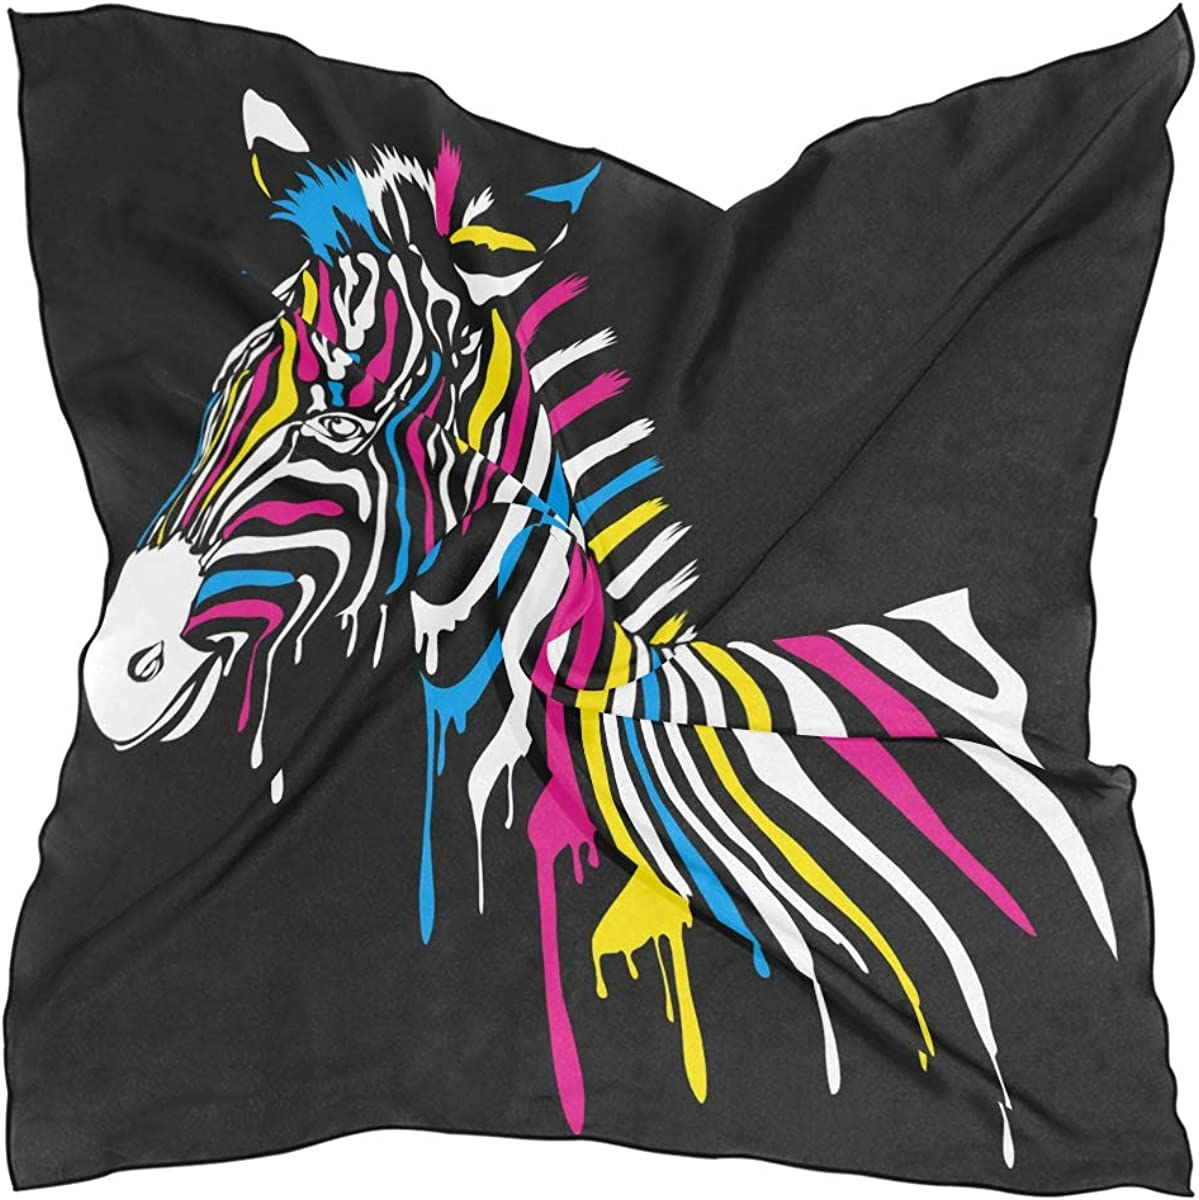 XLING Fashion Square Scarf Colorful Abstract Animal Zebra Lightweight Sunscreen Scarves Muffler Hair Wrap Headscarf Neckerchief for Women Men